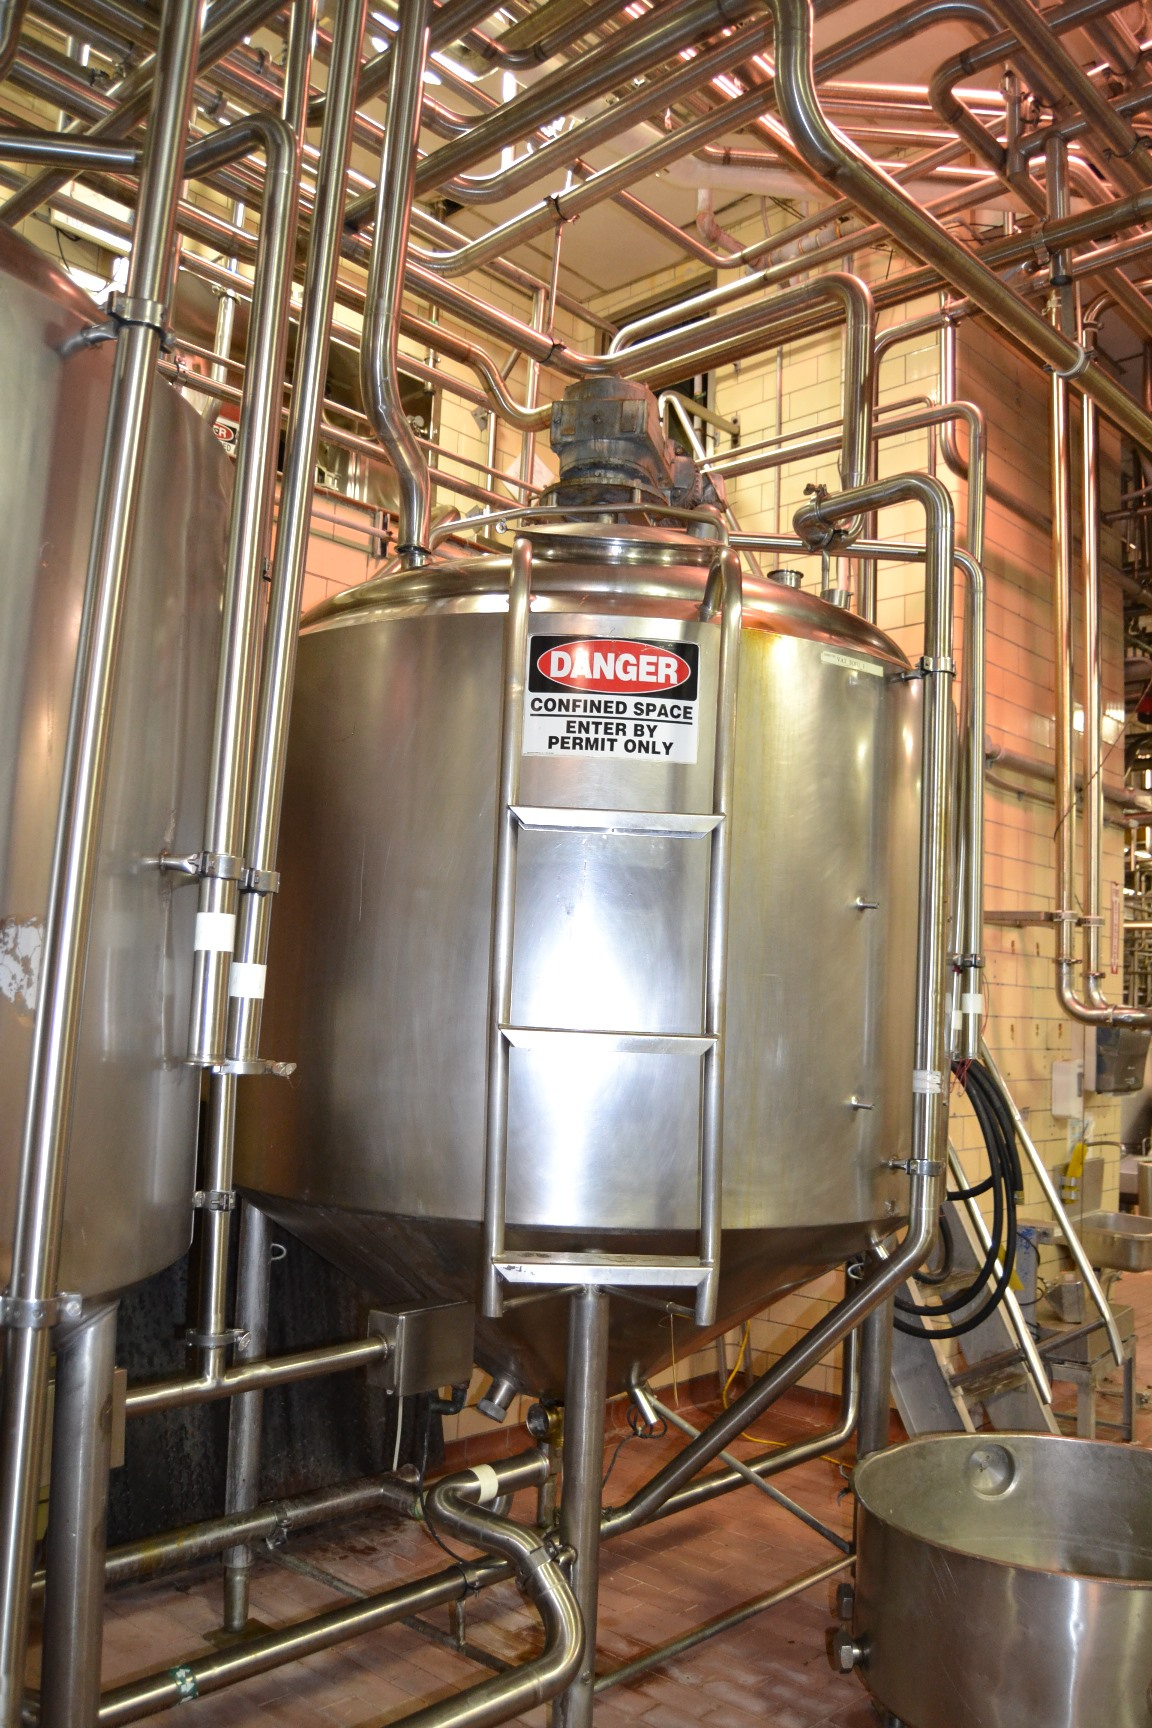 used 800 Gallon Crepaco Jacketed Mix tank/processor kettle with Sweep agitation. Jacket rated 50 PSI. Dish top and Cone Bottom. Drive is dual HP: 2 HP 1740 rpm, 230 volt/ 1HP, 870 rpm, 230 volt into Reliance gearbox rated 14/7 rpm output. Has baffle and spray ball. Approx. 7' OD x 10' OAH without mixer drive.  3